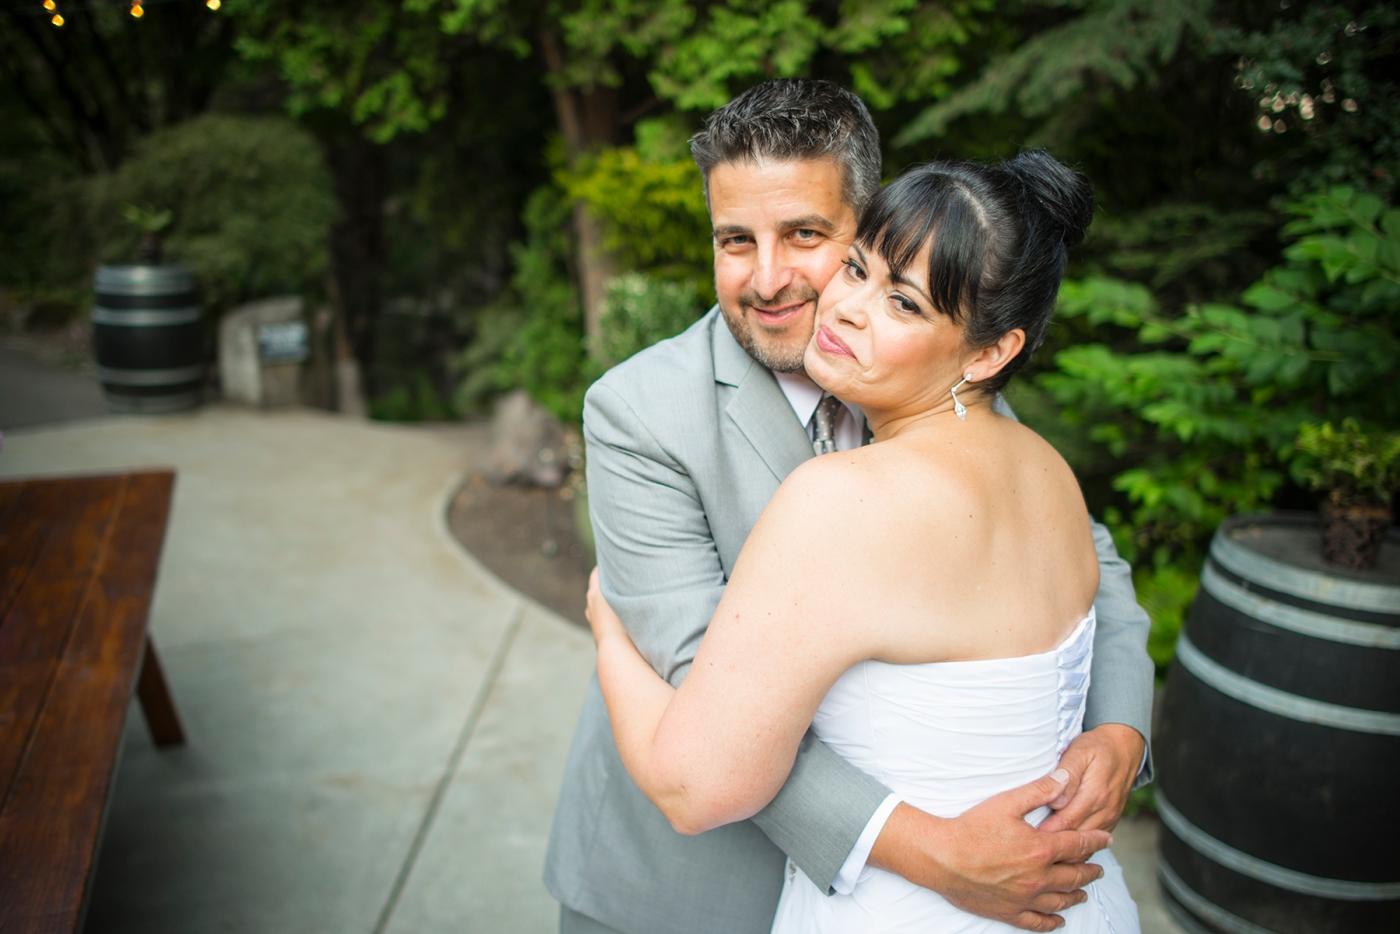 ang_matt_jm_woodinville_2016_js_photography_wedding_dsc_3057